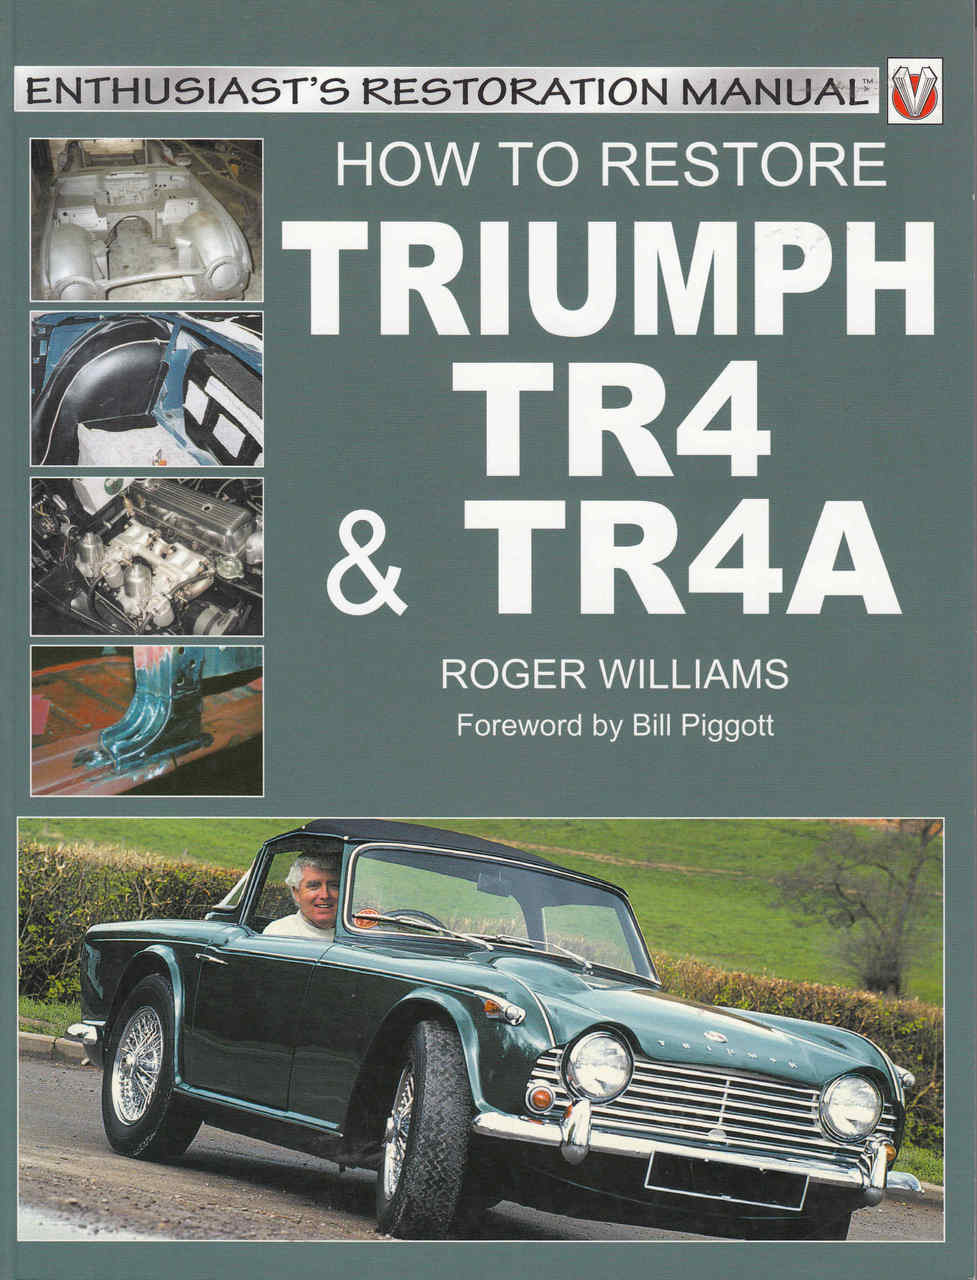 How To Restore Triumph Tr4 Tr4a Enthusiasts Restoration Manual